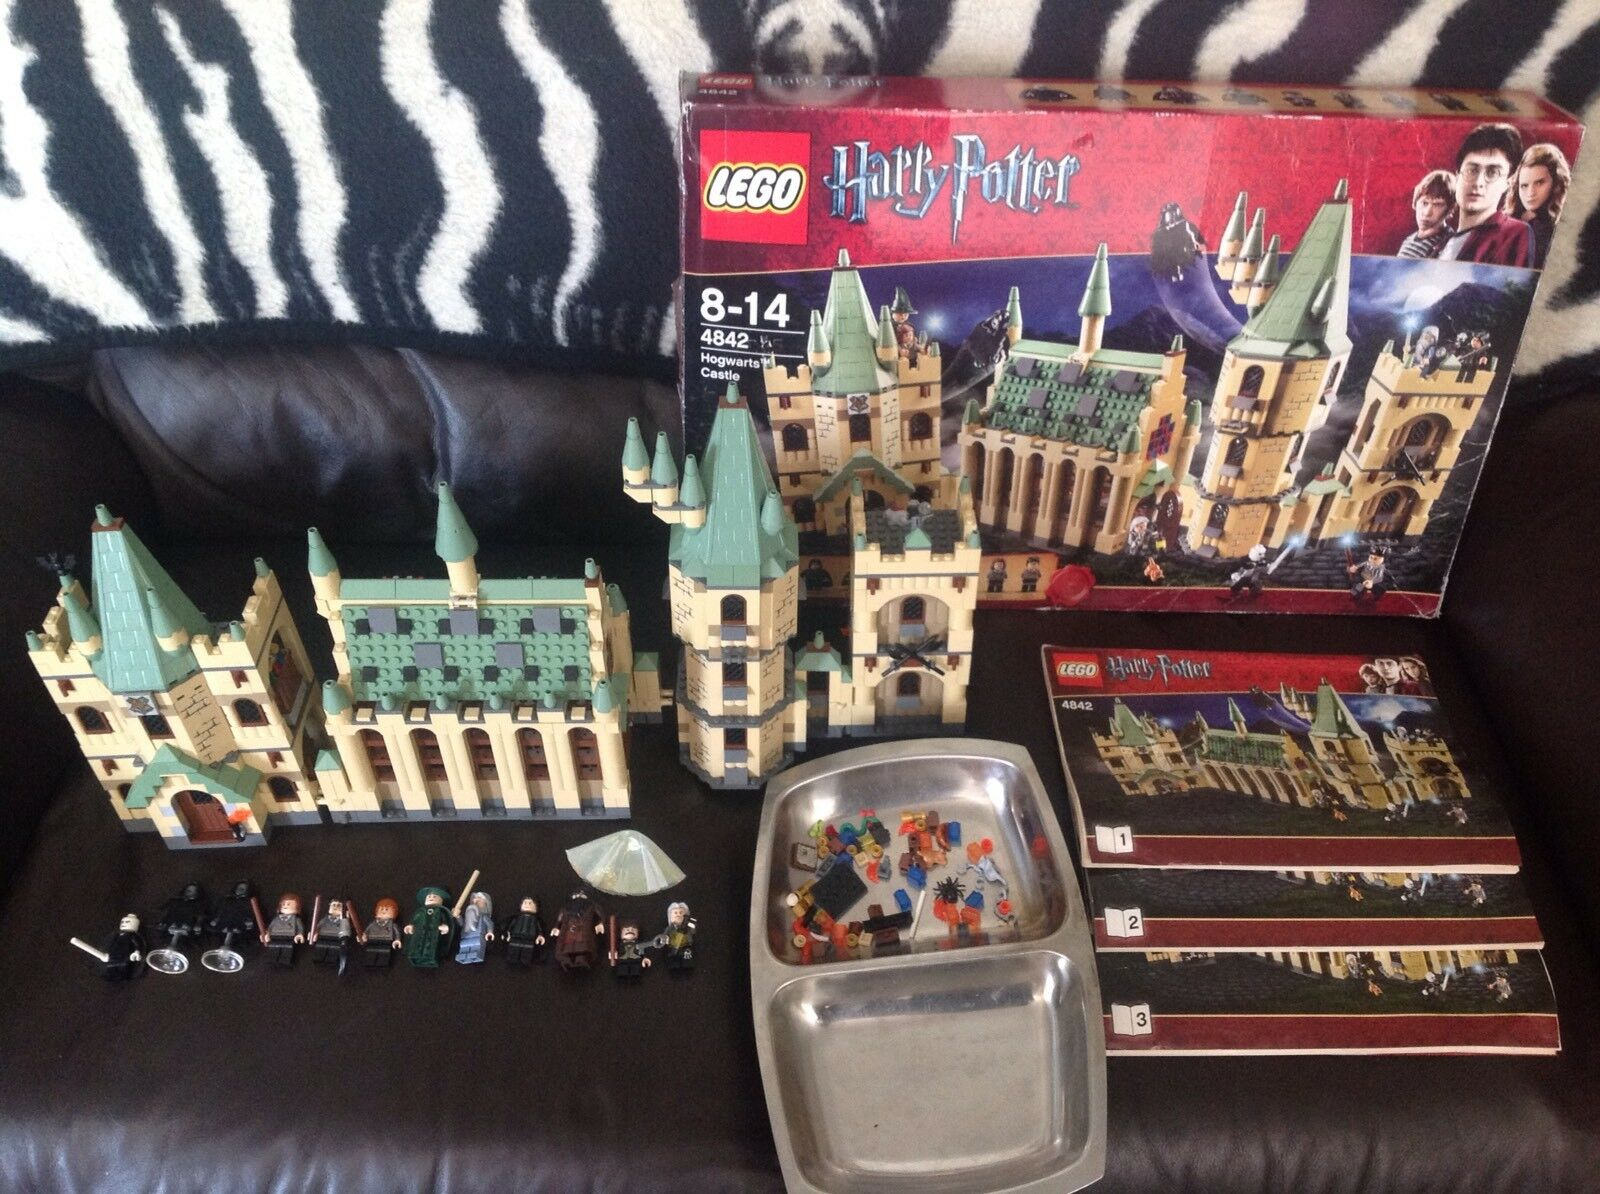 Lego Harry Potter 4842 Hogwarts Castle 4th Edition Complete With All Minifigures